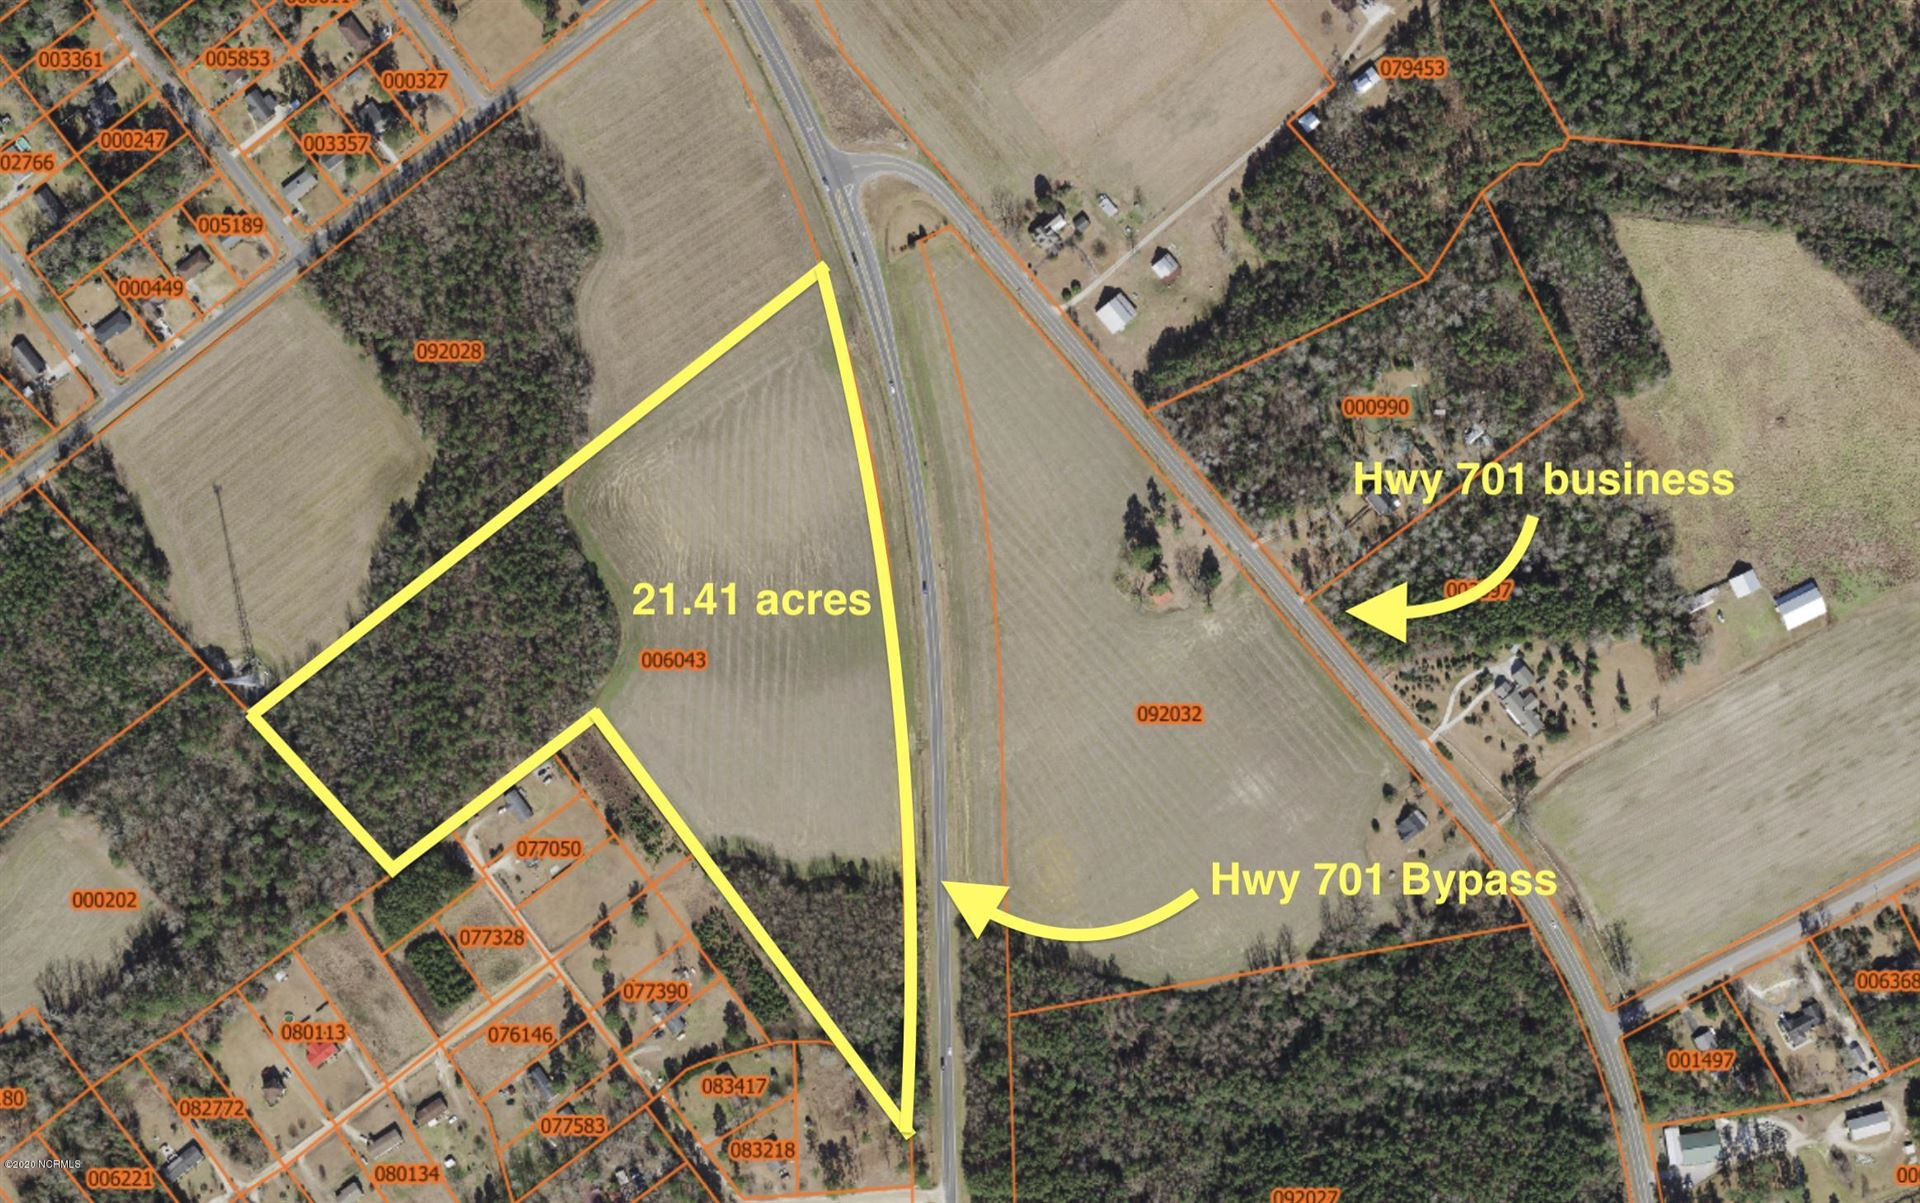 Photo of 1603 701 Bypass Highway, Whiteville, NC 28472 (MLS # 100224923)